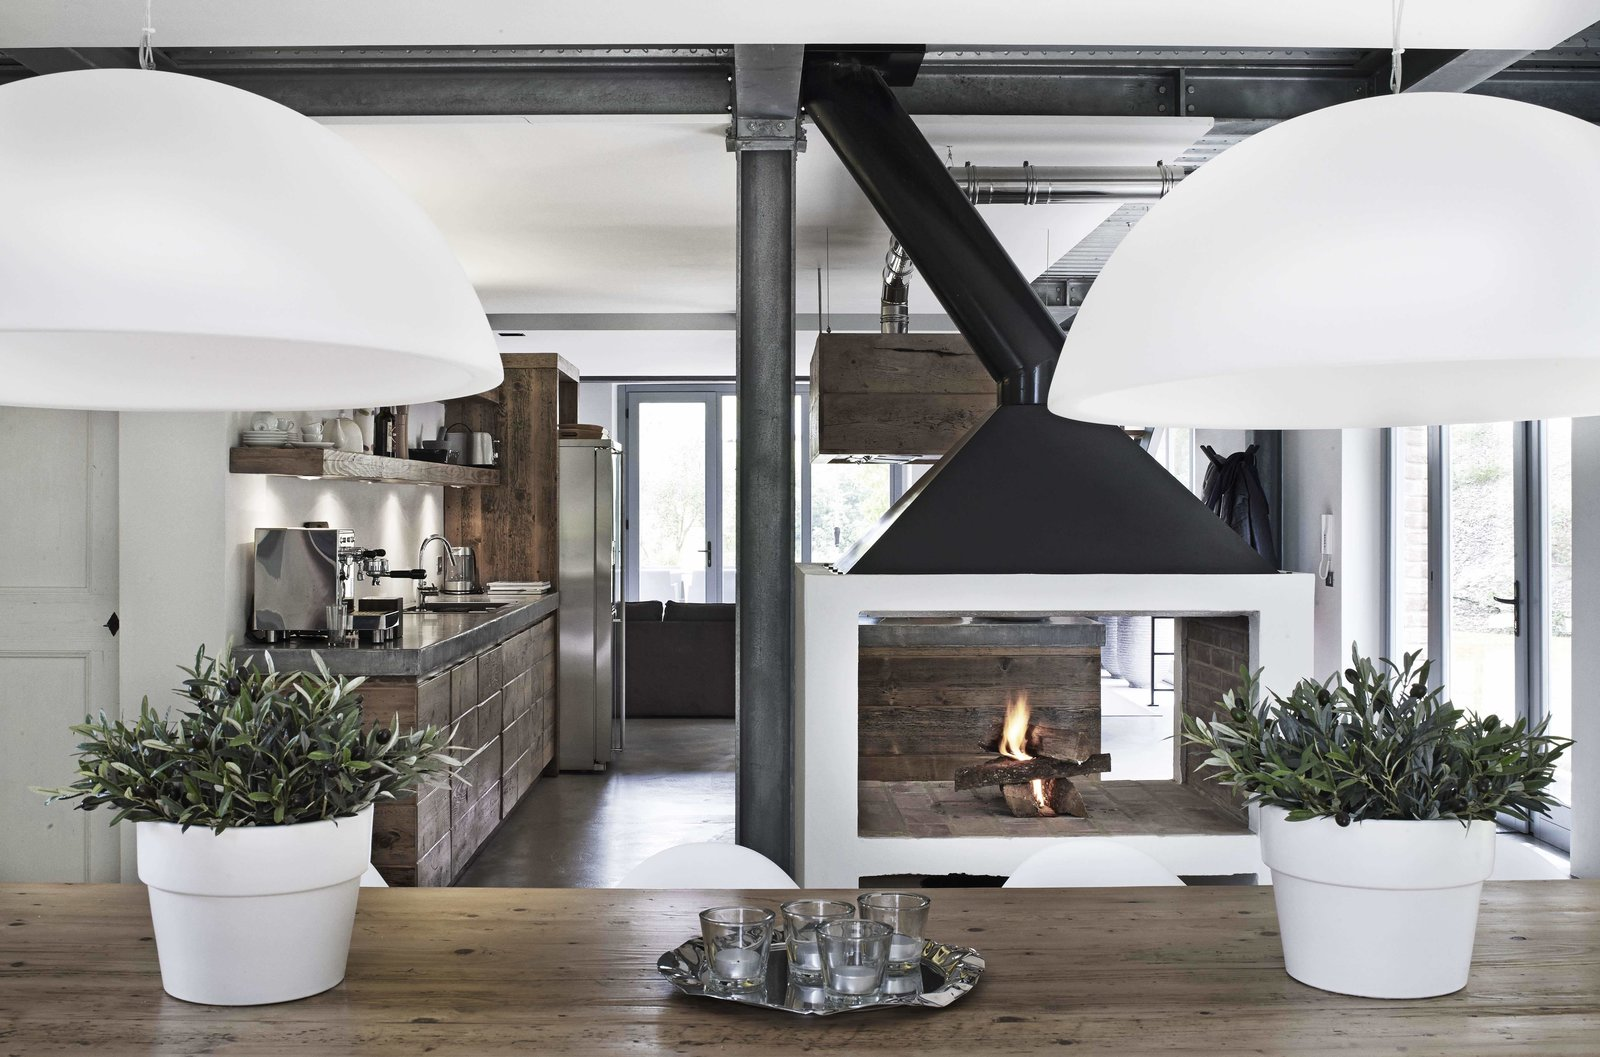 Dining Room, Pendant Lighting, Standard Layout Fireplace, Two-Sided Fireplace, Dark Hardwood Floor, Wood Burning Fireplace, and Table  Photo 4 of 11 in Stay in a Modern, Industrial Home That's Hidden Inside a Traditional Tuscan Villa